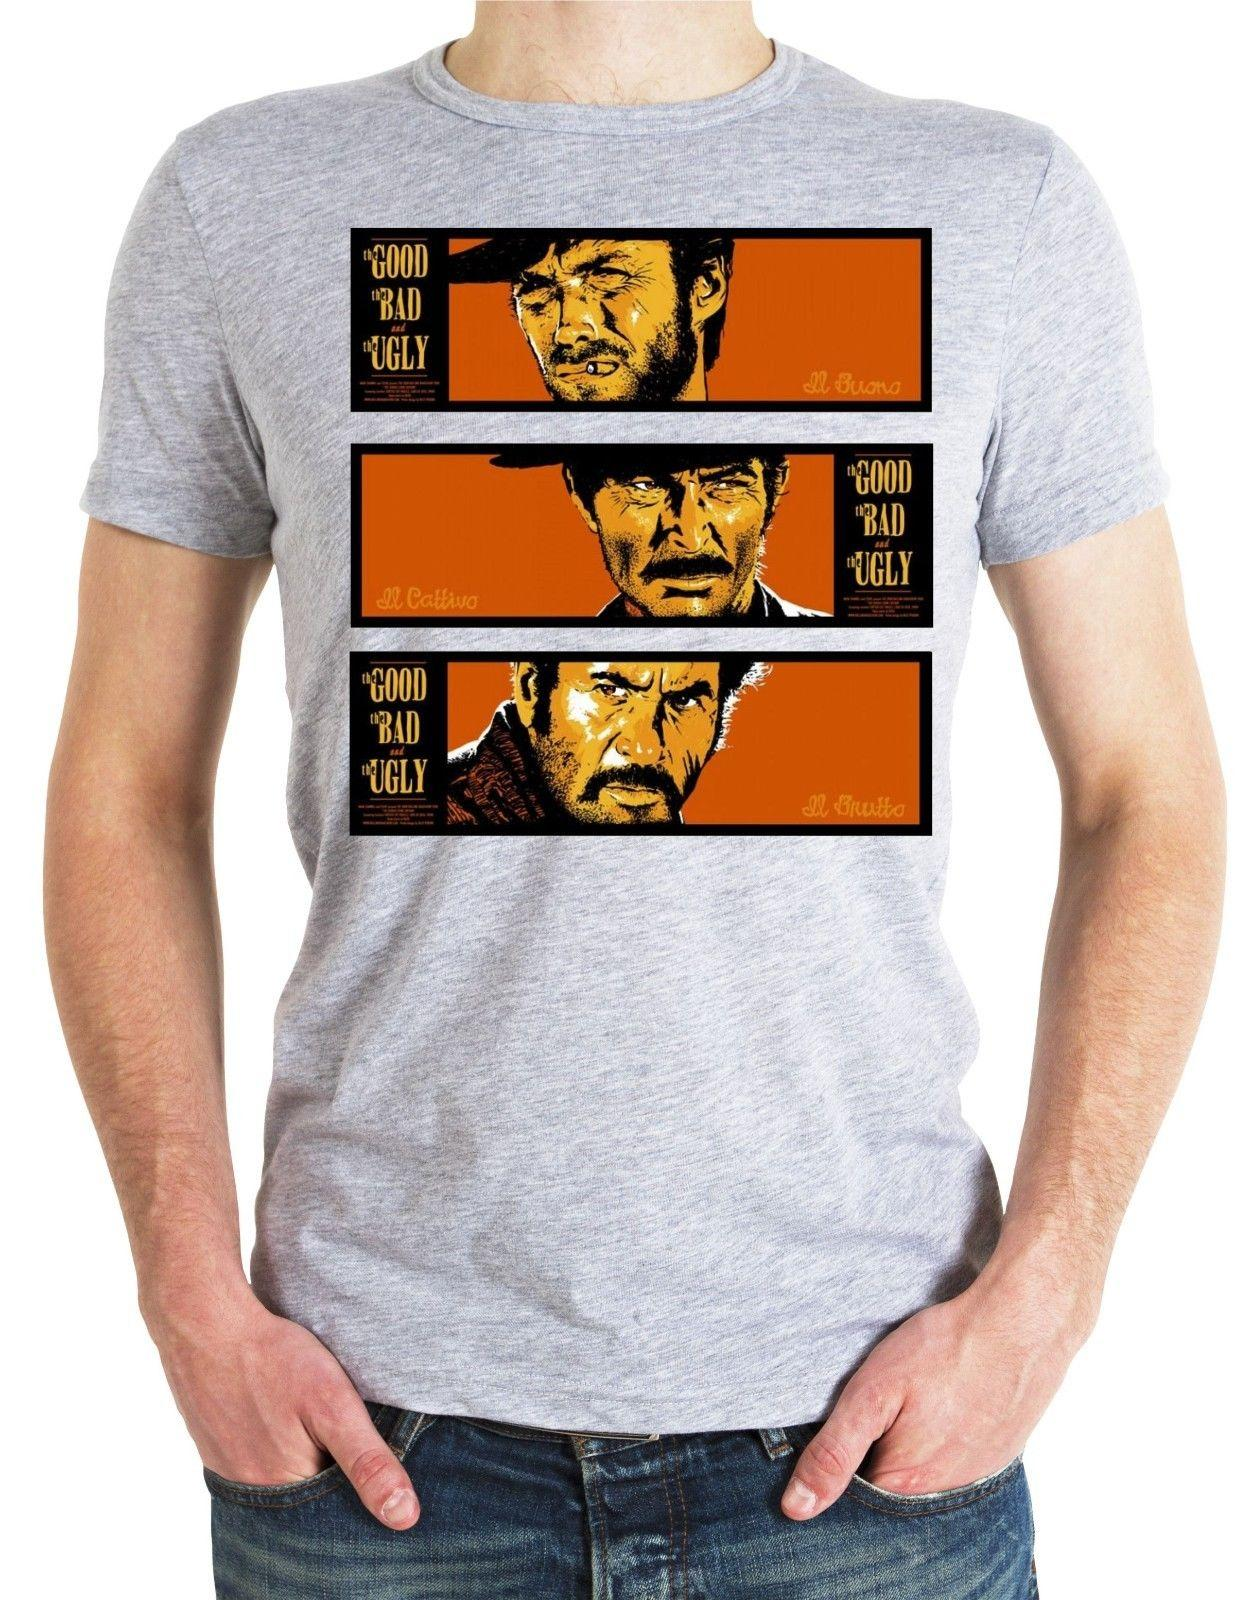 The Good The Bad & The Ugly T-Shirt MOVIE FILM COWBOY 60S 70S Clint Eastwood 3 Cool Casual pride t shirt men Unisex New